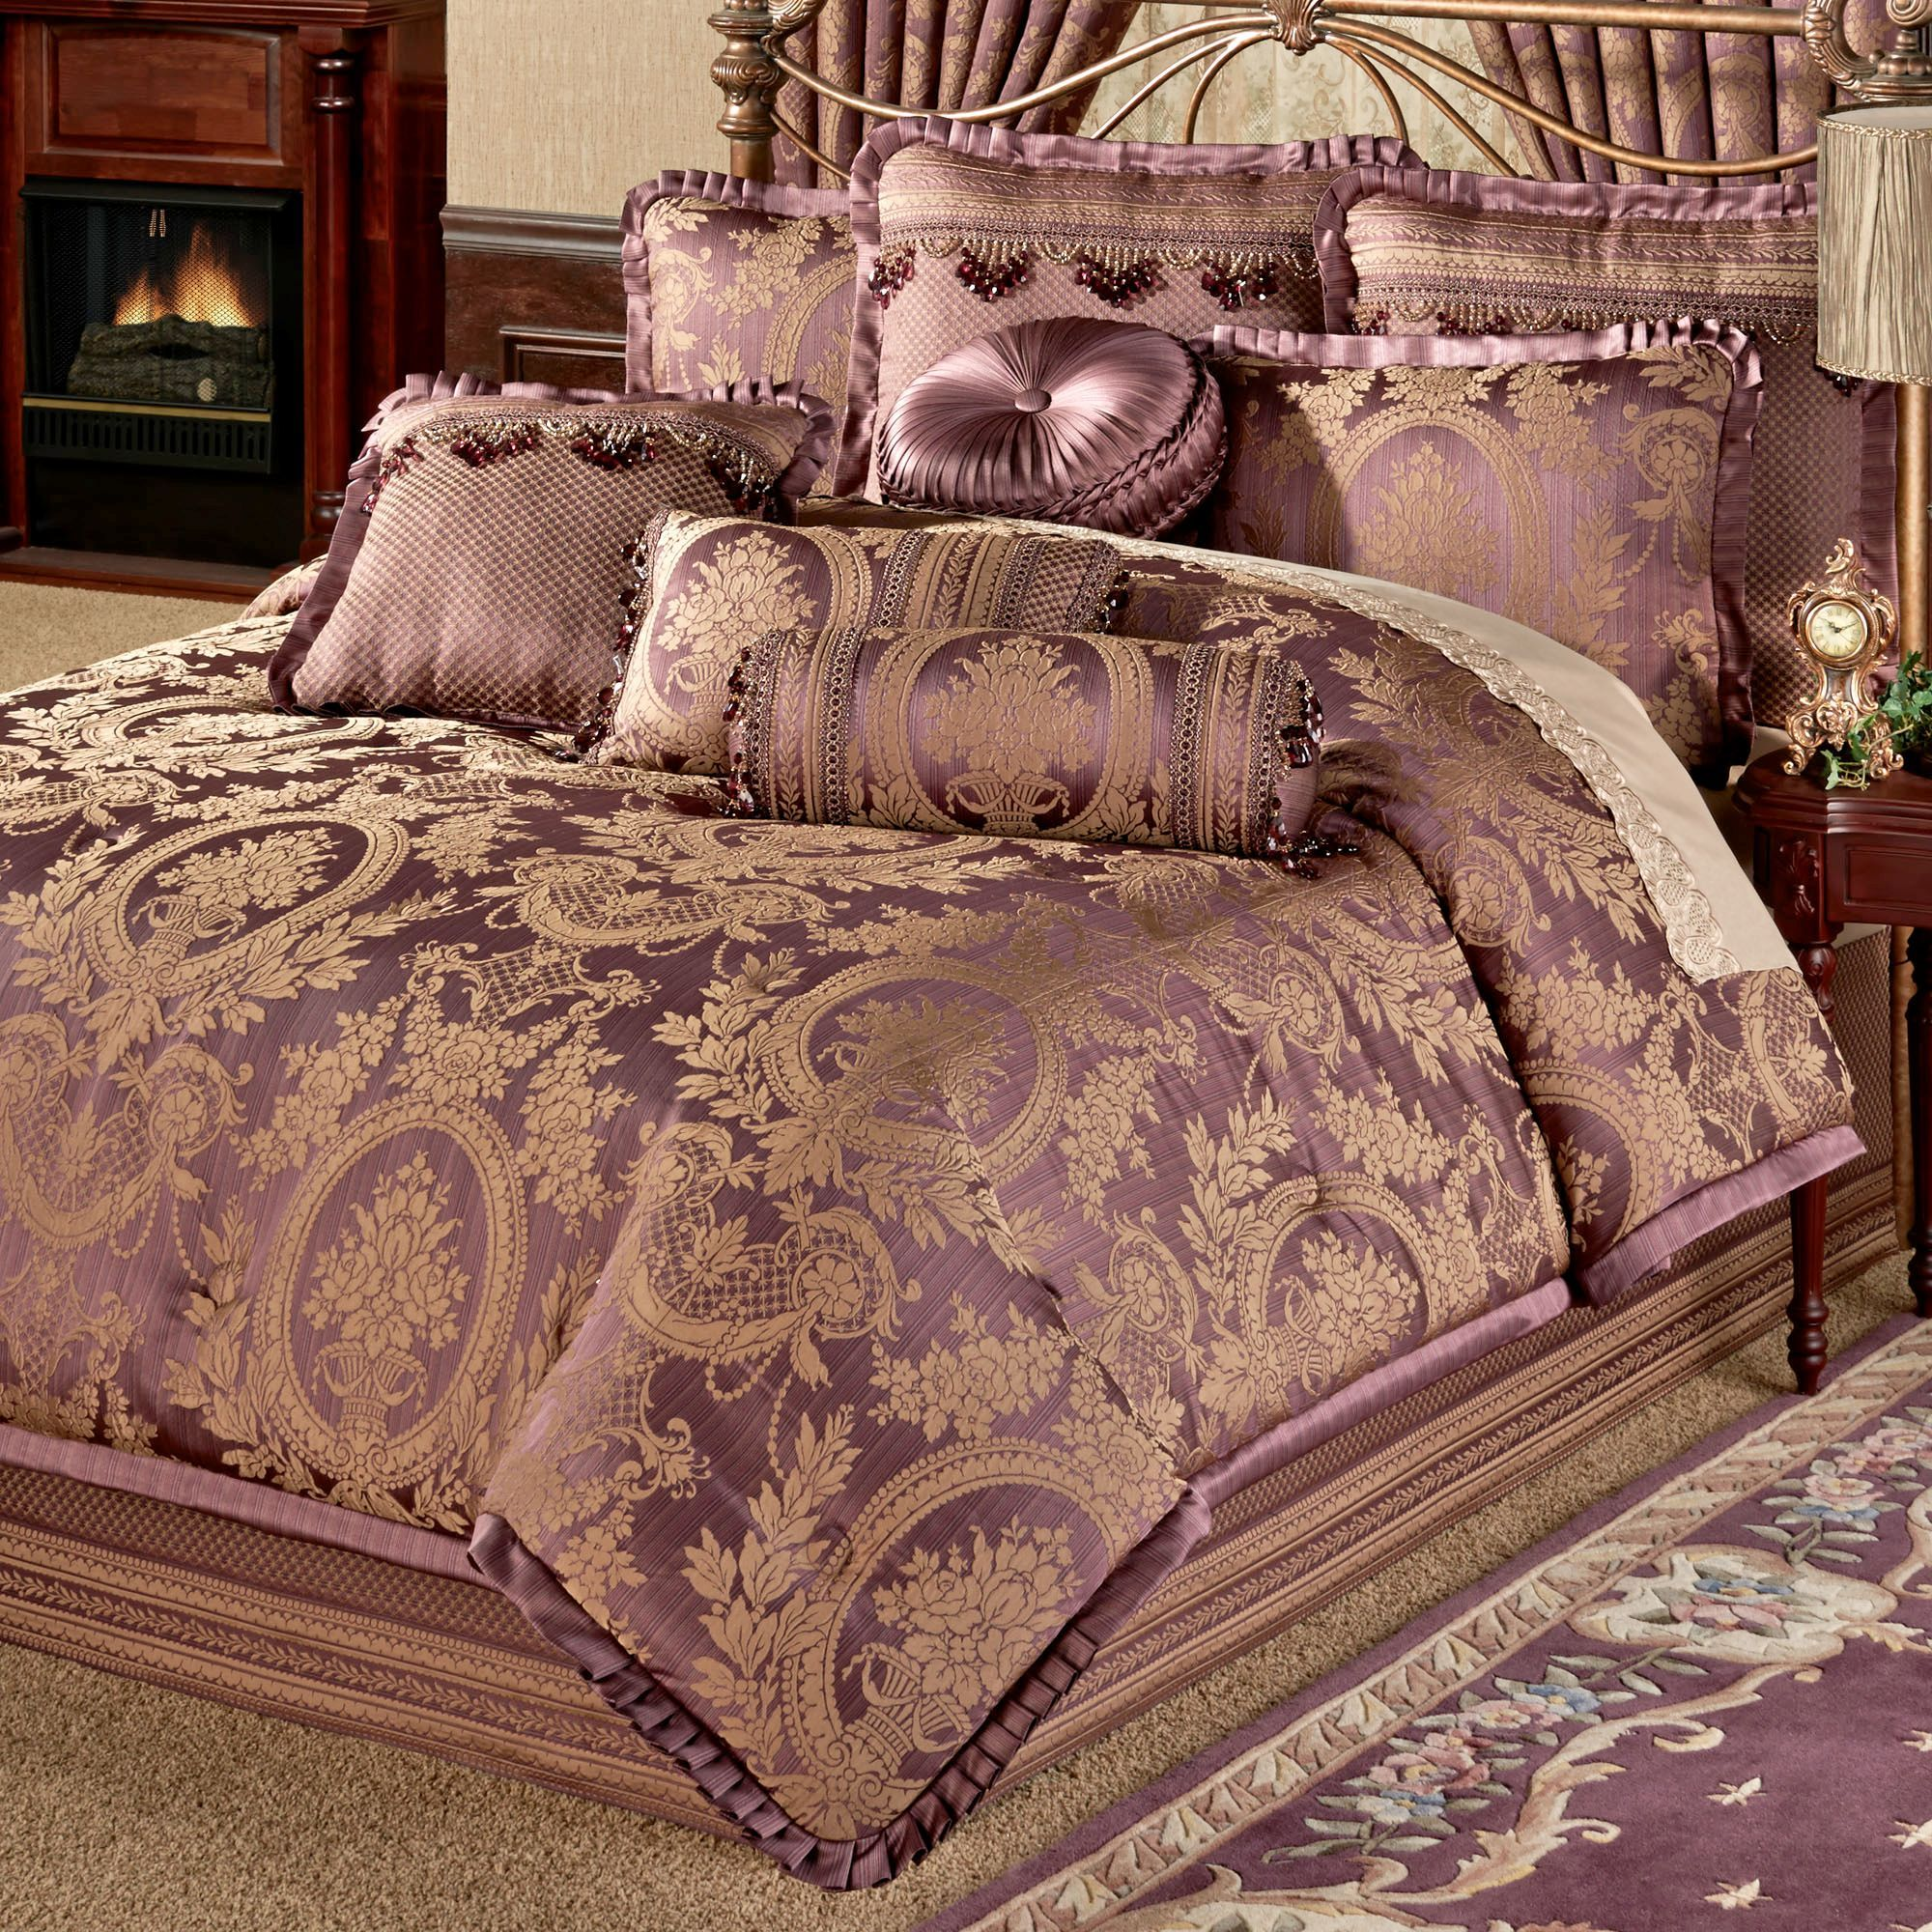 Bedding jardin collection bedding collections bed amp bath macy s - Josephine Floral Medallion Comforter Bedding